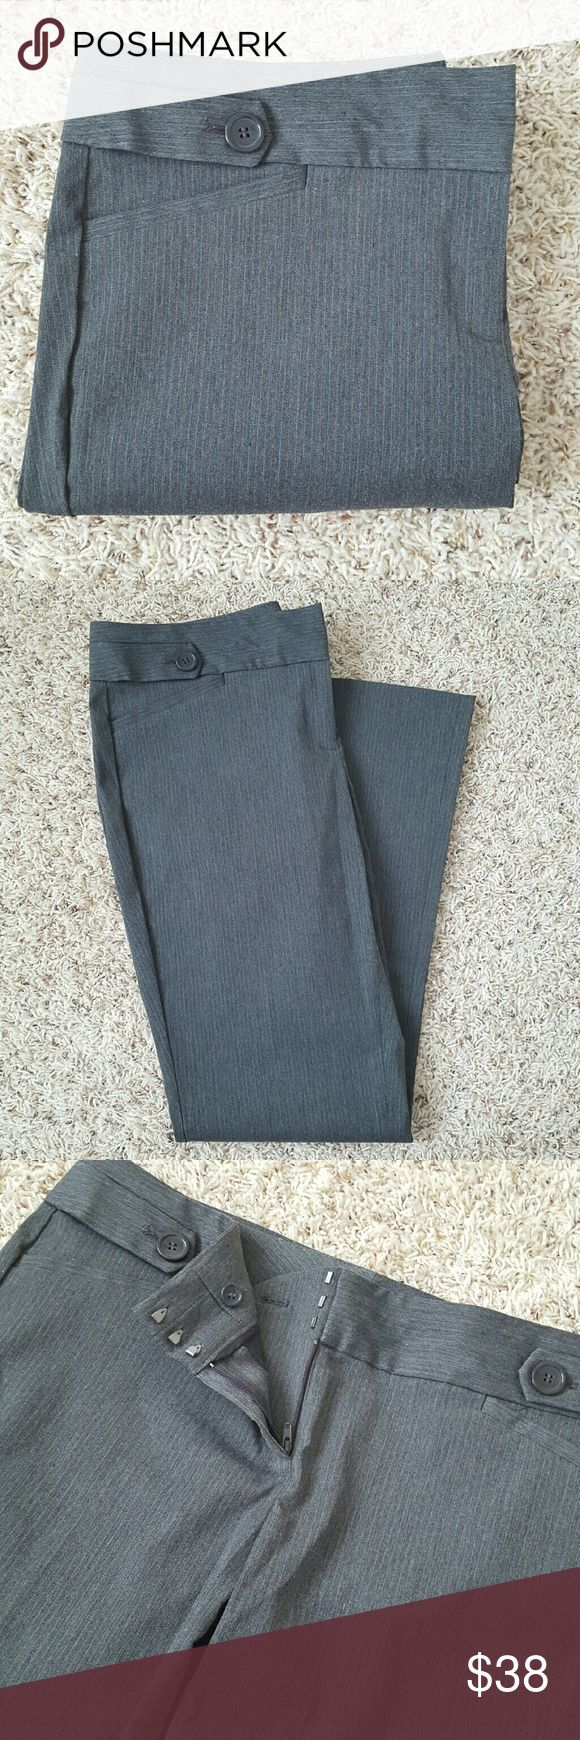 Exact Stretch Classic Flare Pants These pants have amazing stretch throughout except for waistline and are really comfy. Pants feature 3 hook and tab waist with inner button and zip fly, faux front pockets, and buttoned welt back pockets. Pre-loved and in great condition. 56% polyester, 21% viscose, 20% nylon, 3% spandex. Machine washable.  Color is dark grey with subtle pinstripe detail. Size is 14R. The Limited Pants Boot Cut & Flare